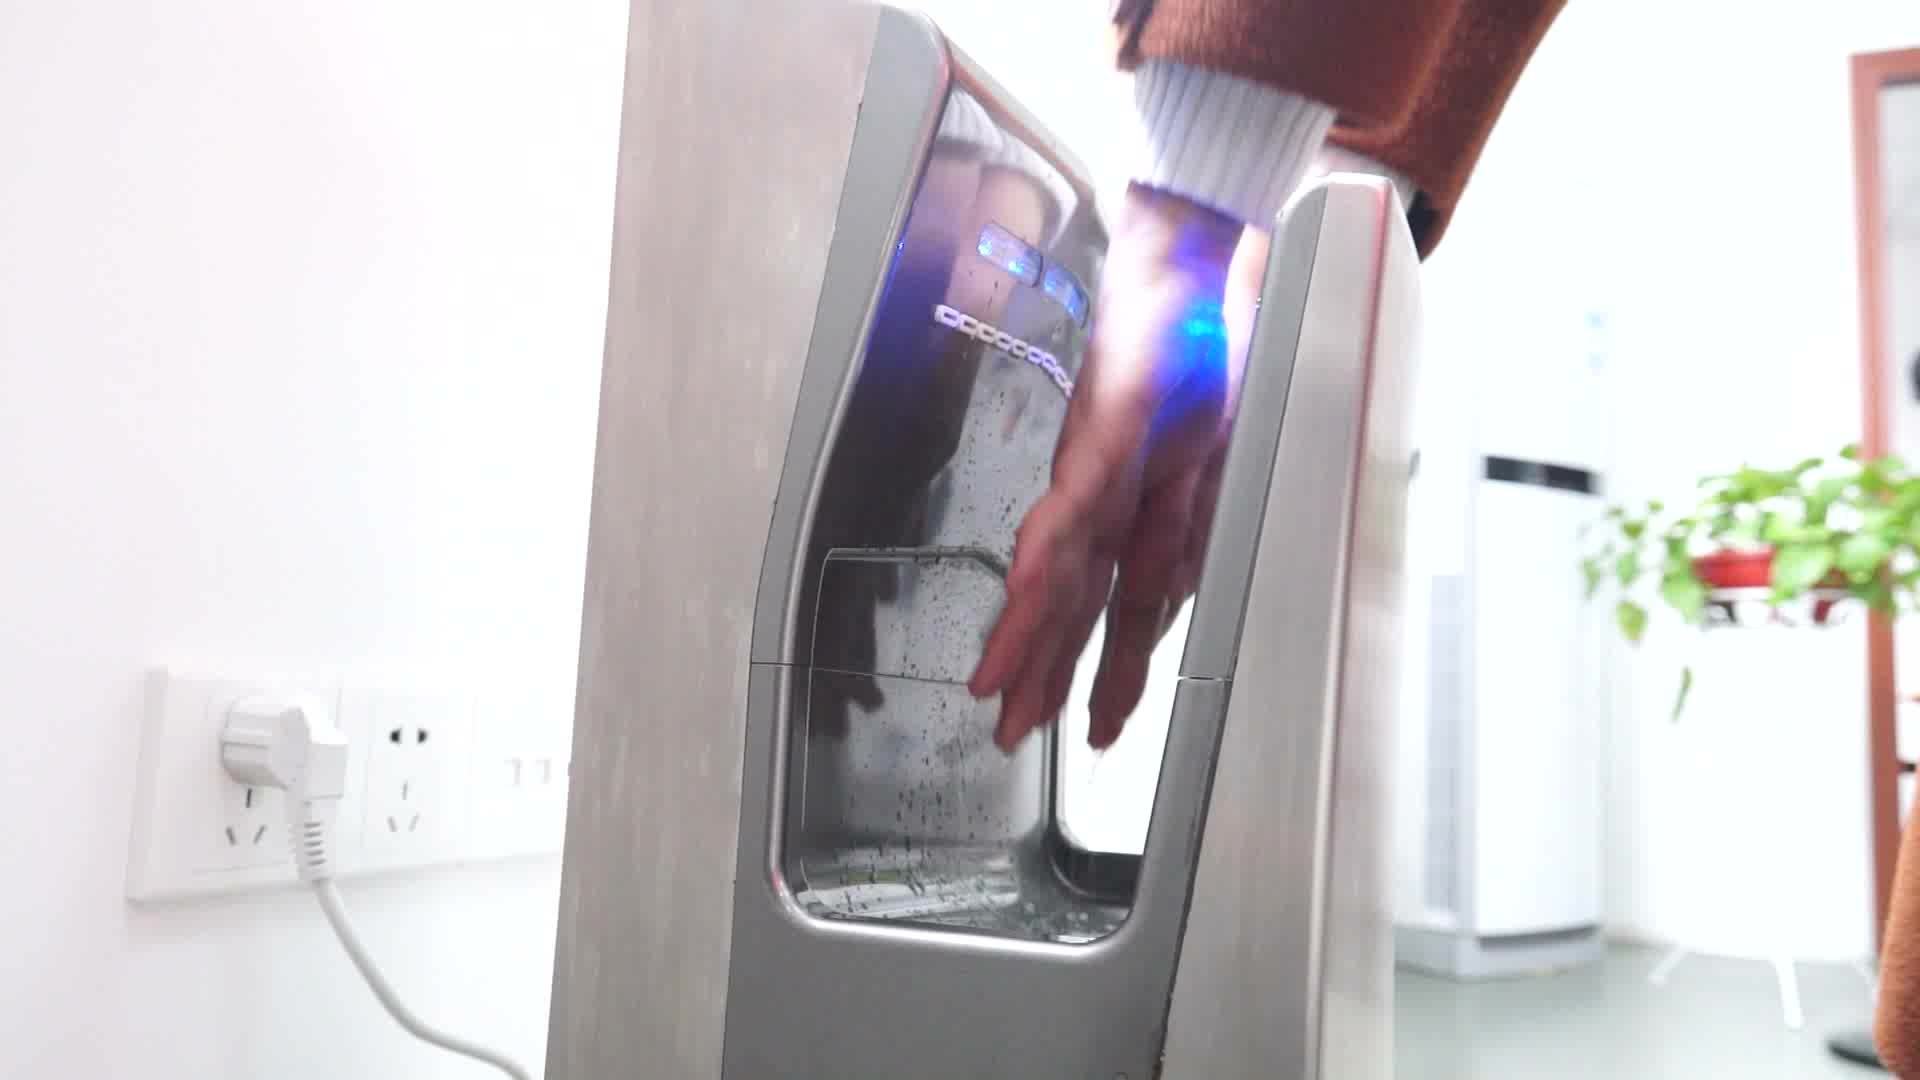 Public Toilet Battery Operated Jet Speed Air Injection Automatic Infrared Sensor Hand Dryer Supplier Manufacturer For Home